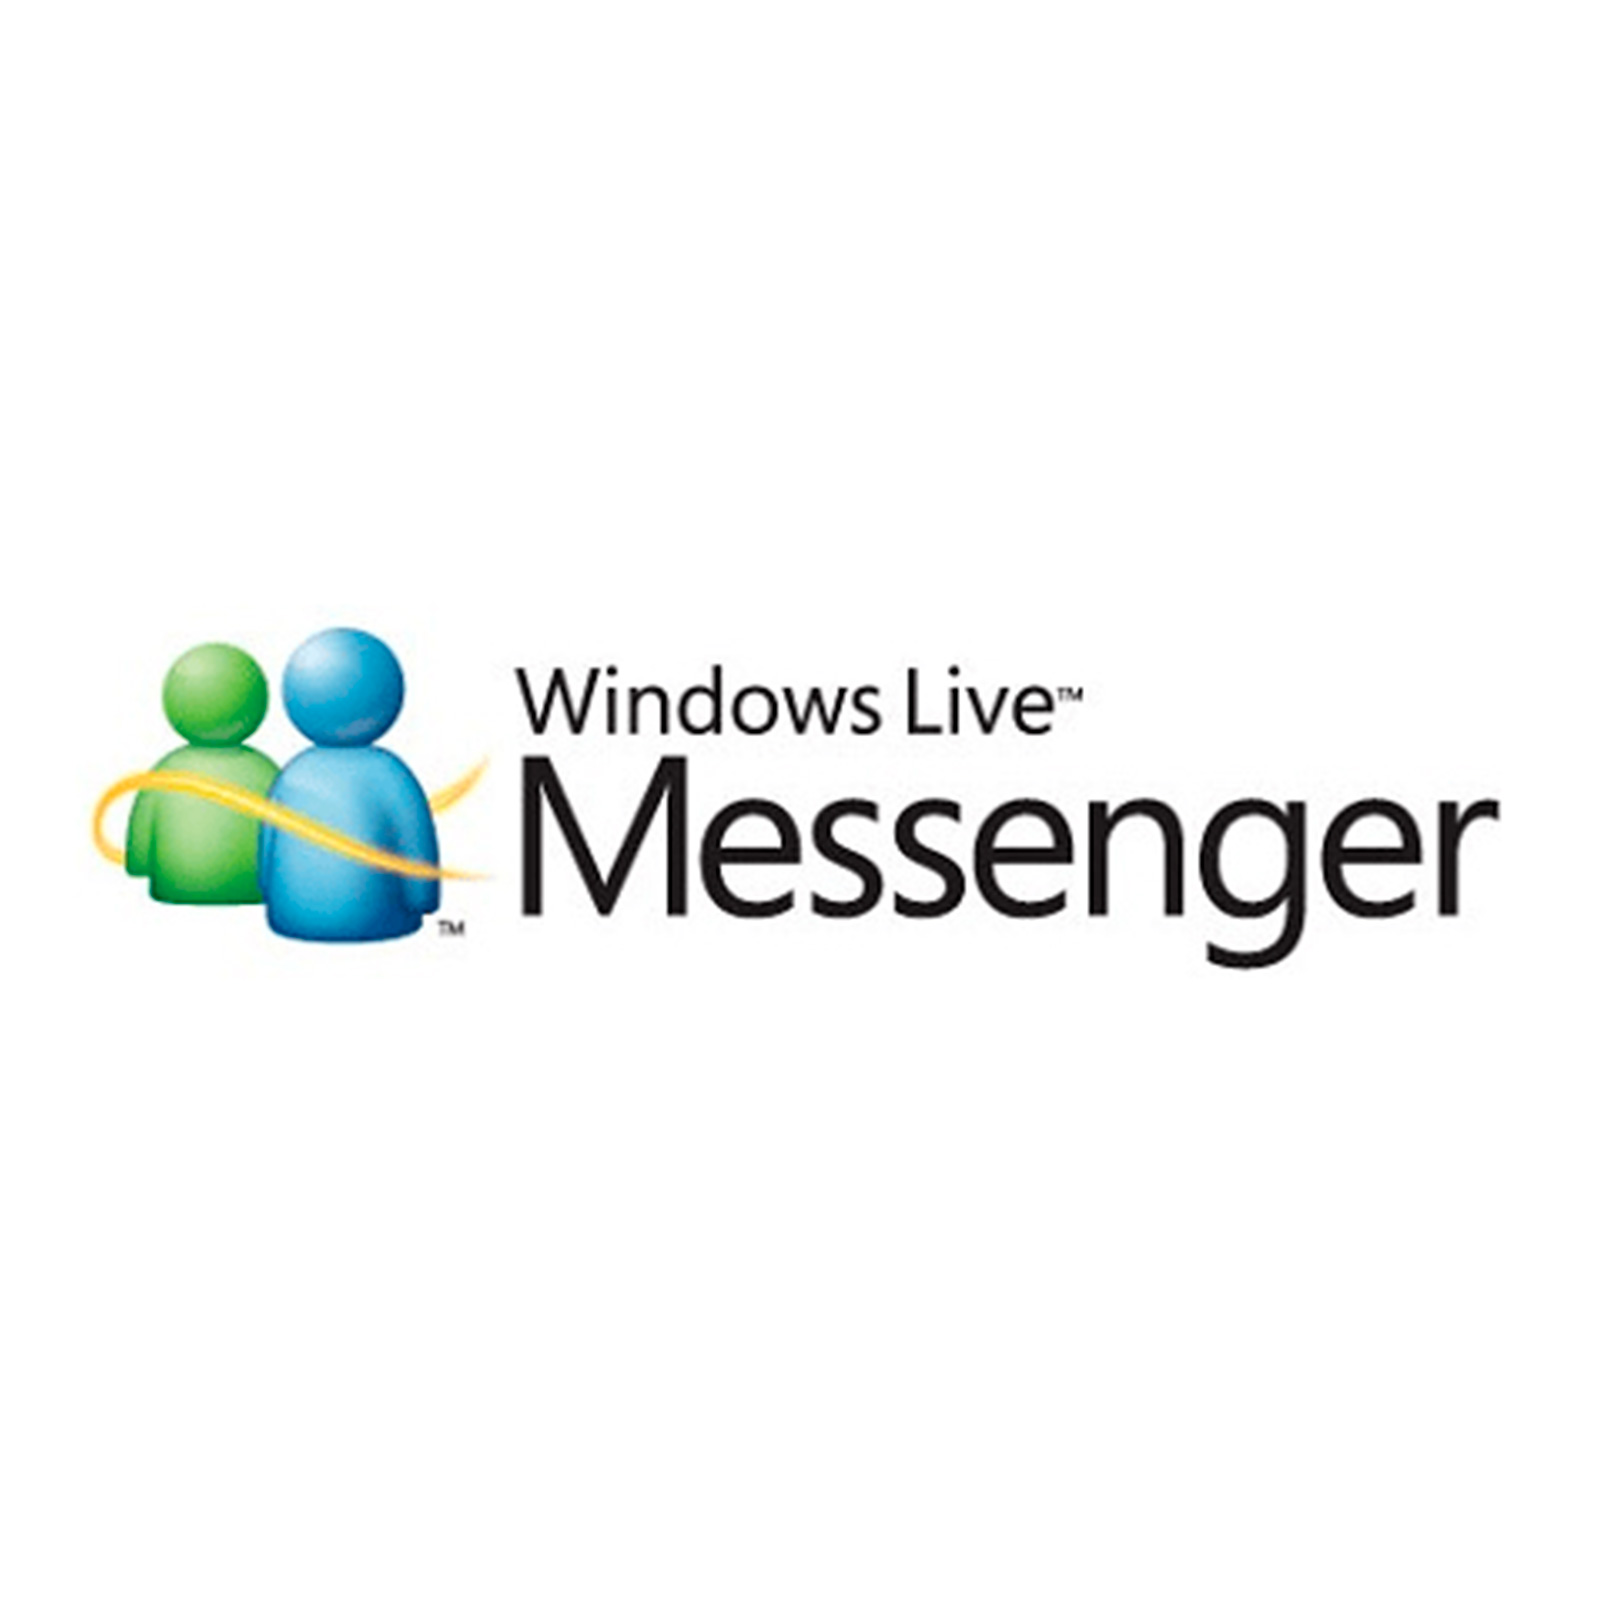 Windows Live Messenger is a discontinued instant messaging client developed by Microsoft for Windows